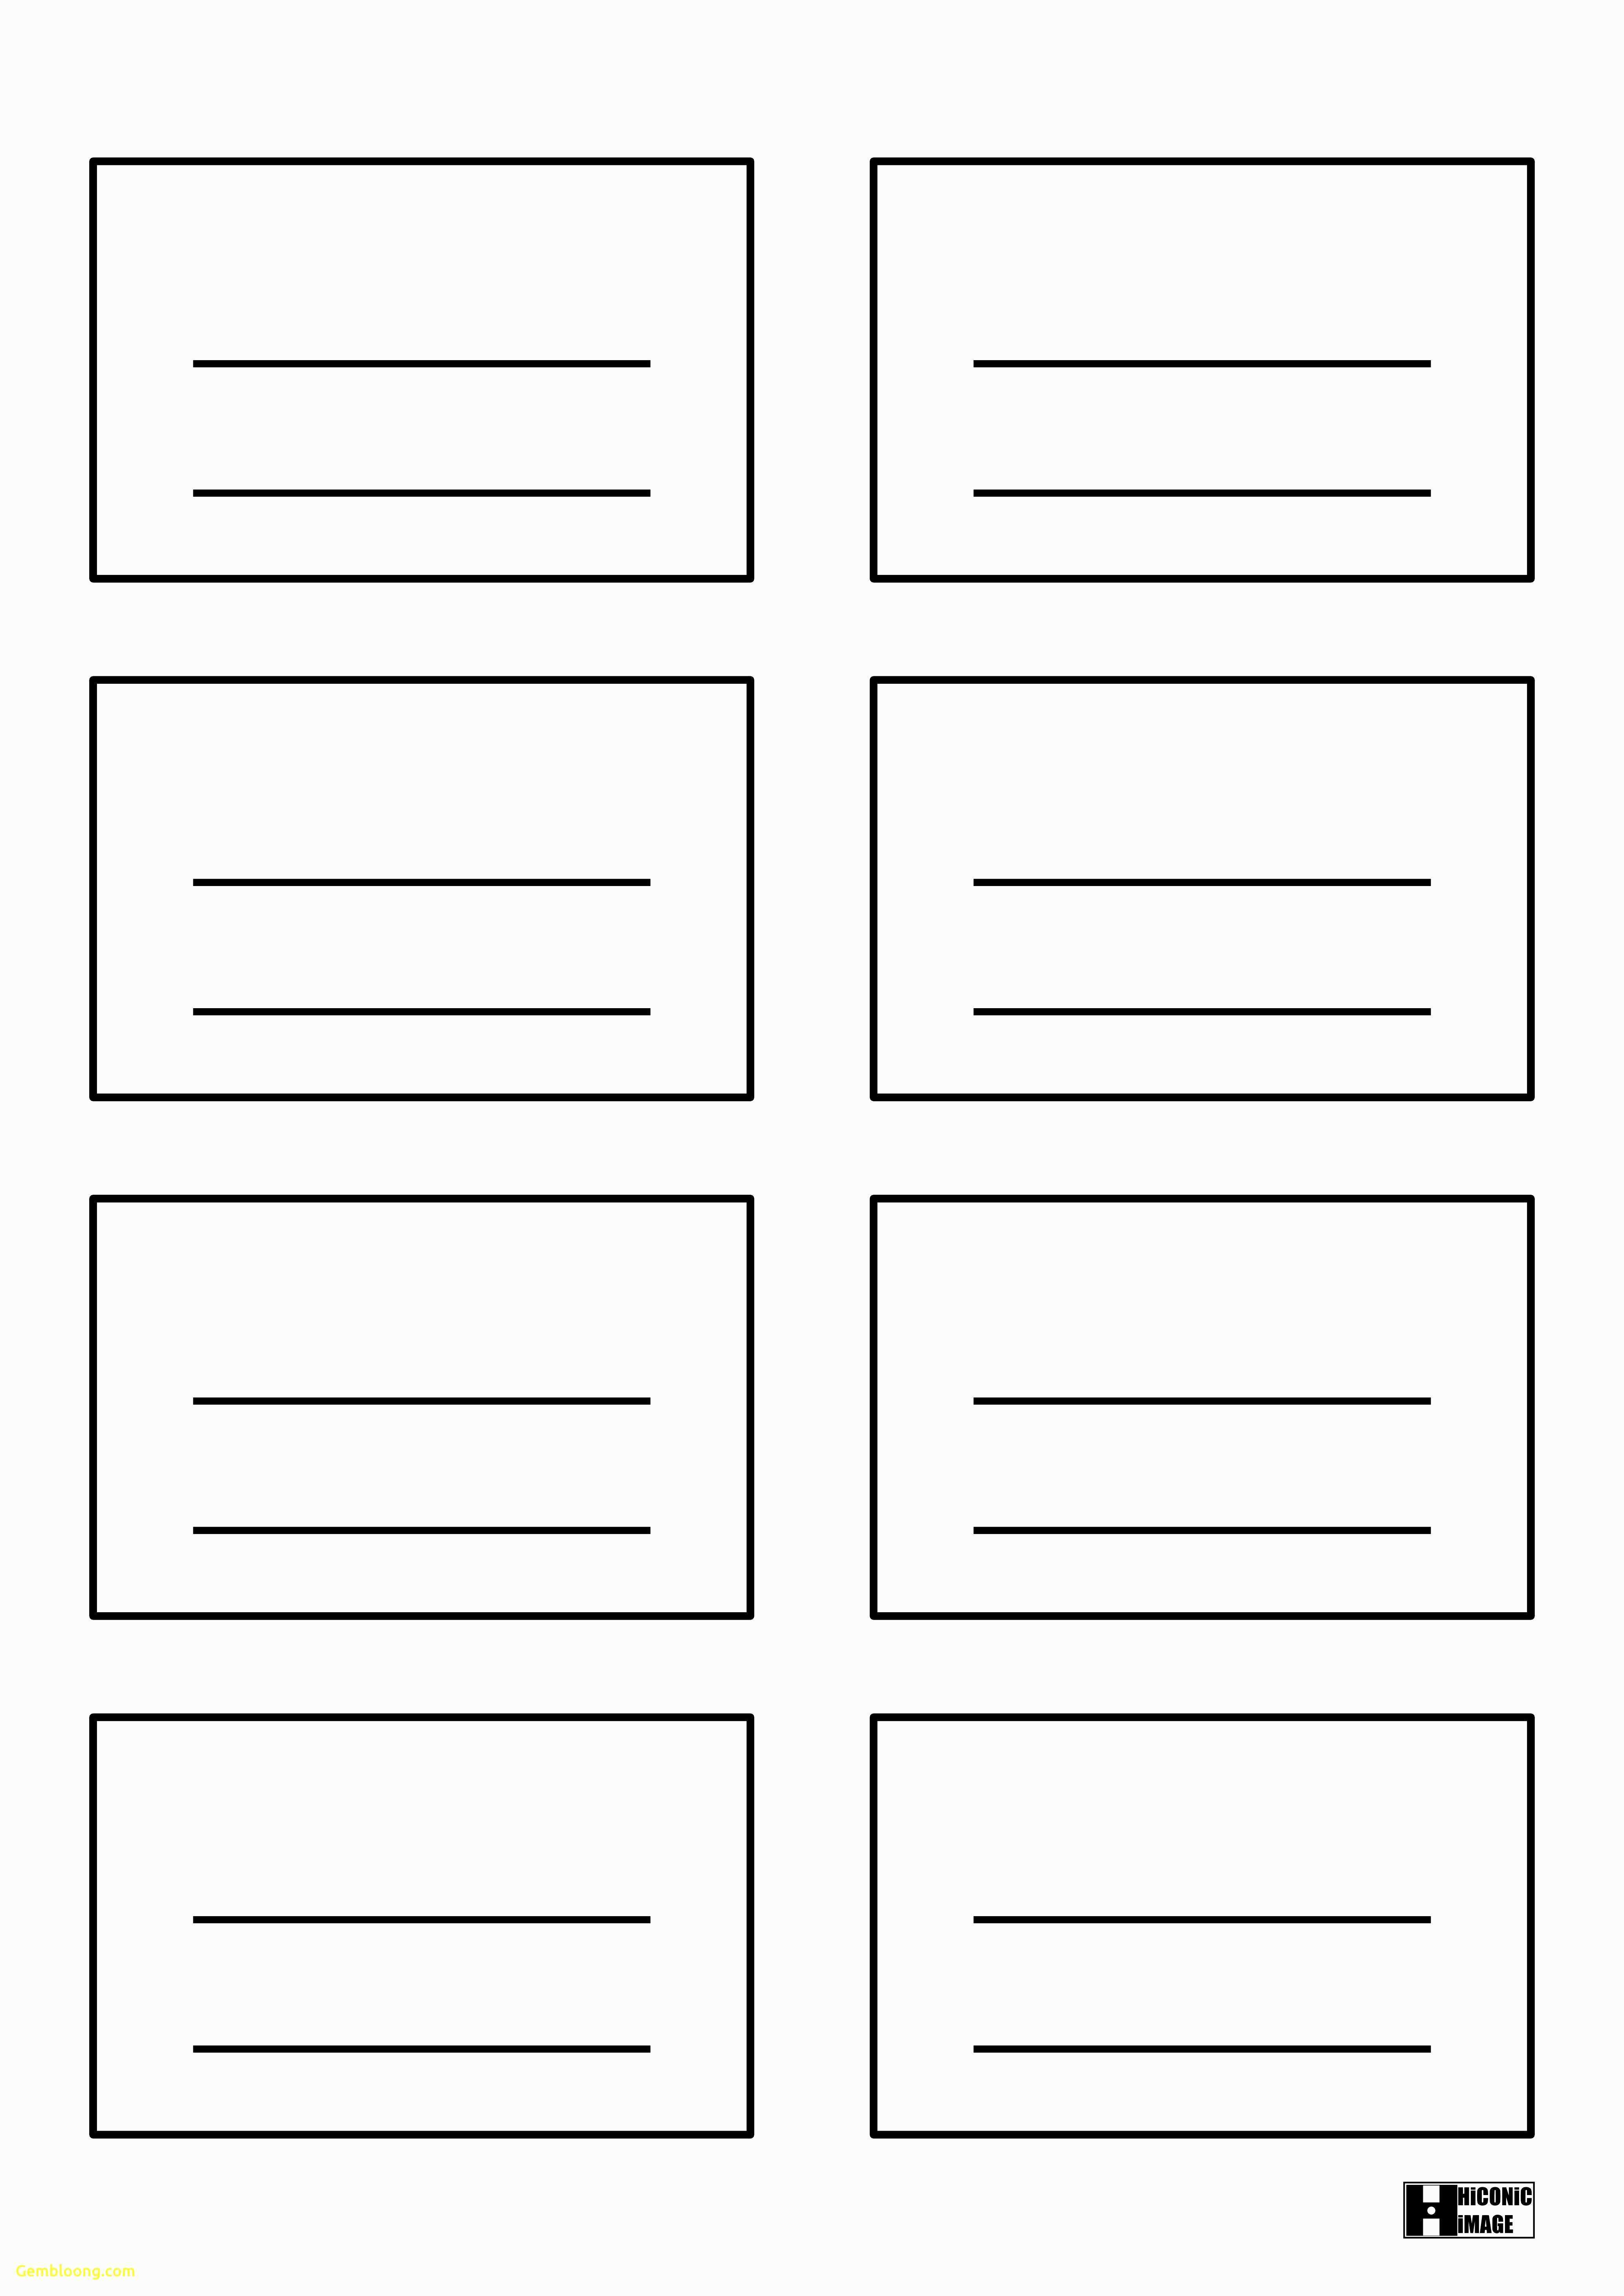 11 Free 4X6 Index Card Printing Template Download with 4X6 Index Card Printing Template